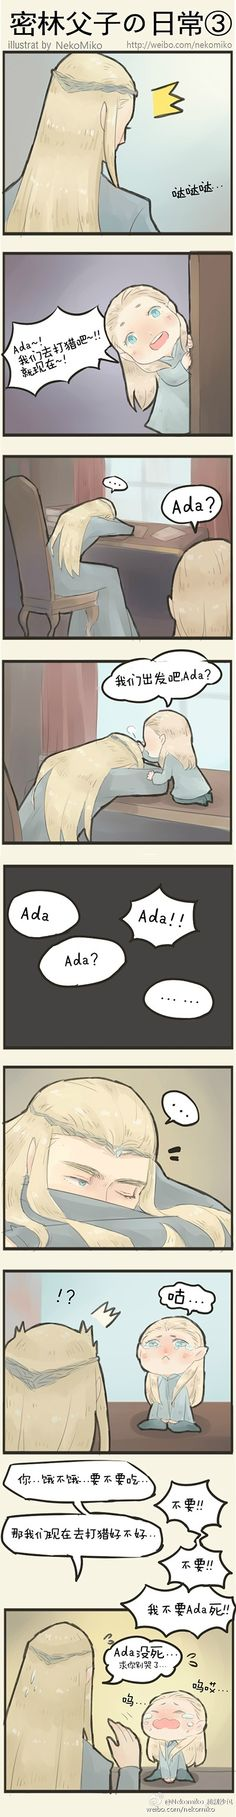 Thranduil and Legolas | Ada, Ada? ADA!!! by Nekomiko_秘制沙包(微博)